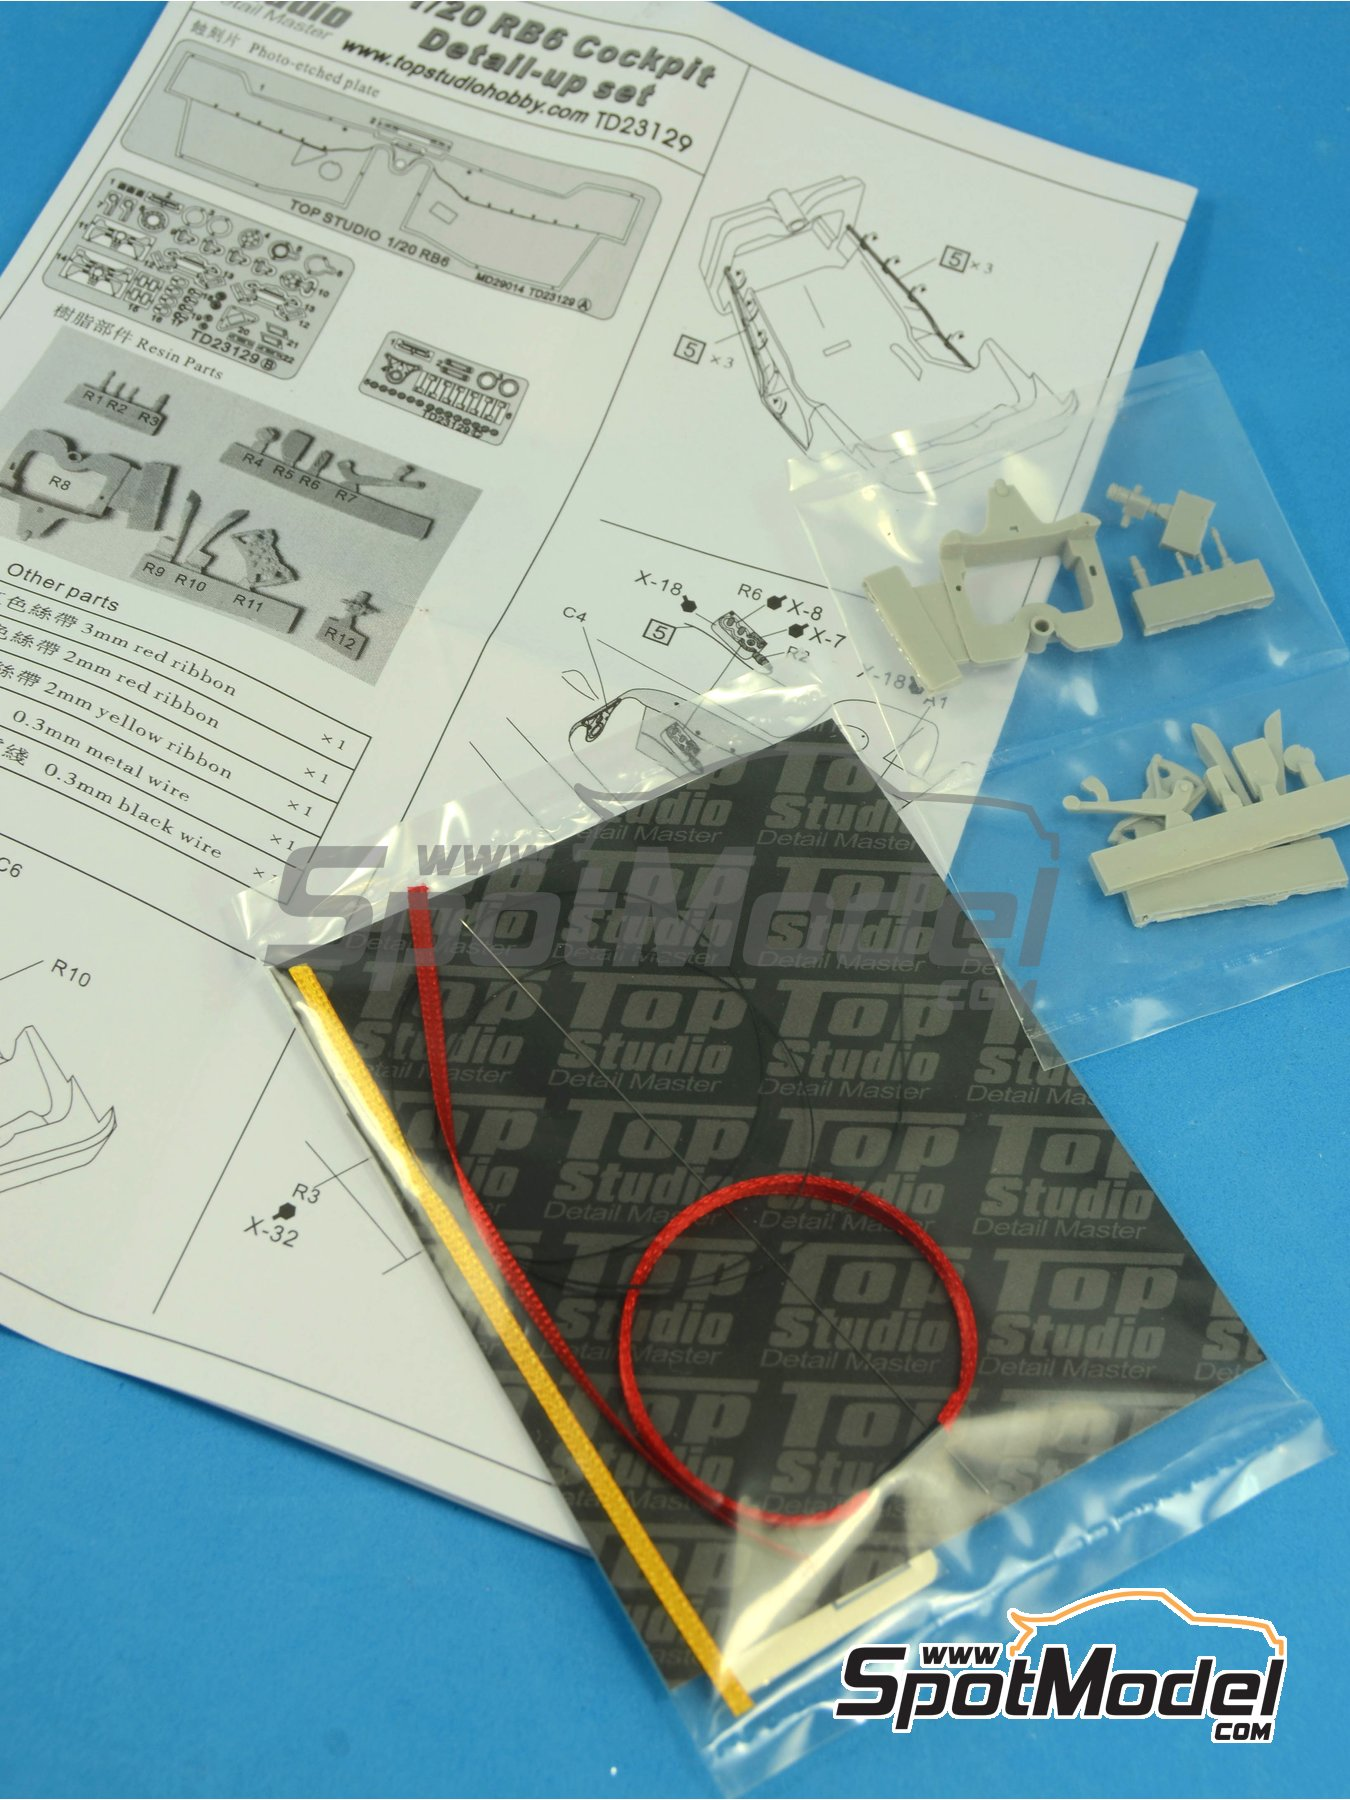 RB Racing Renault RB6 - Cockpit | Detail in 1/20 scale manufactured by Top Studio (ref.TD23129) image